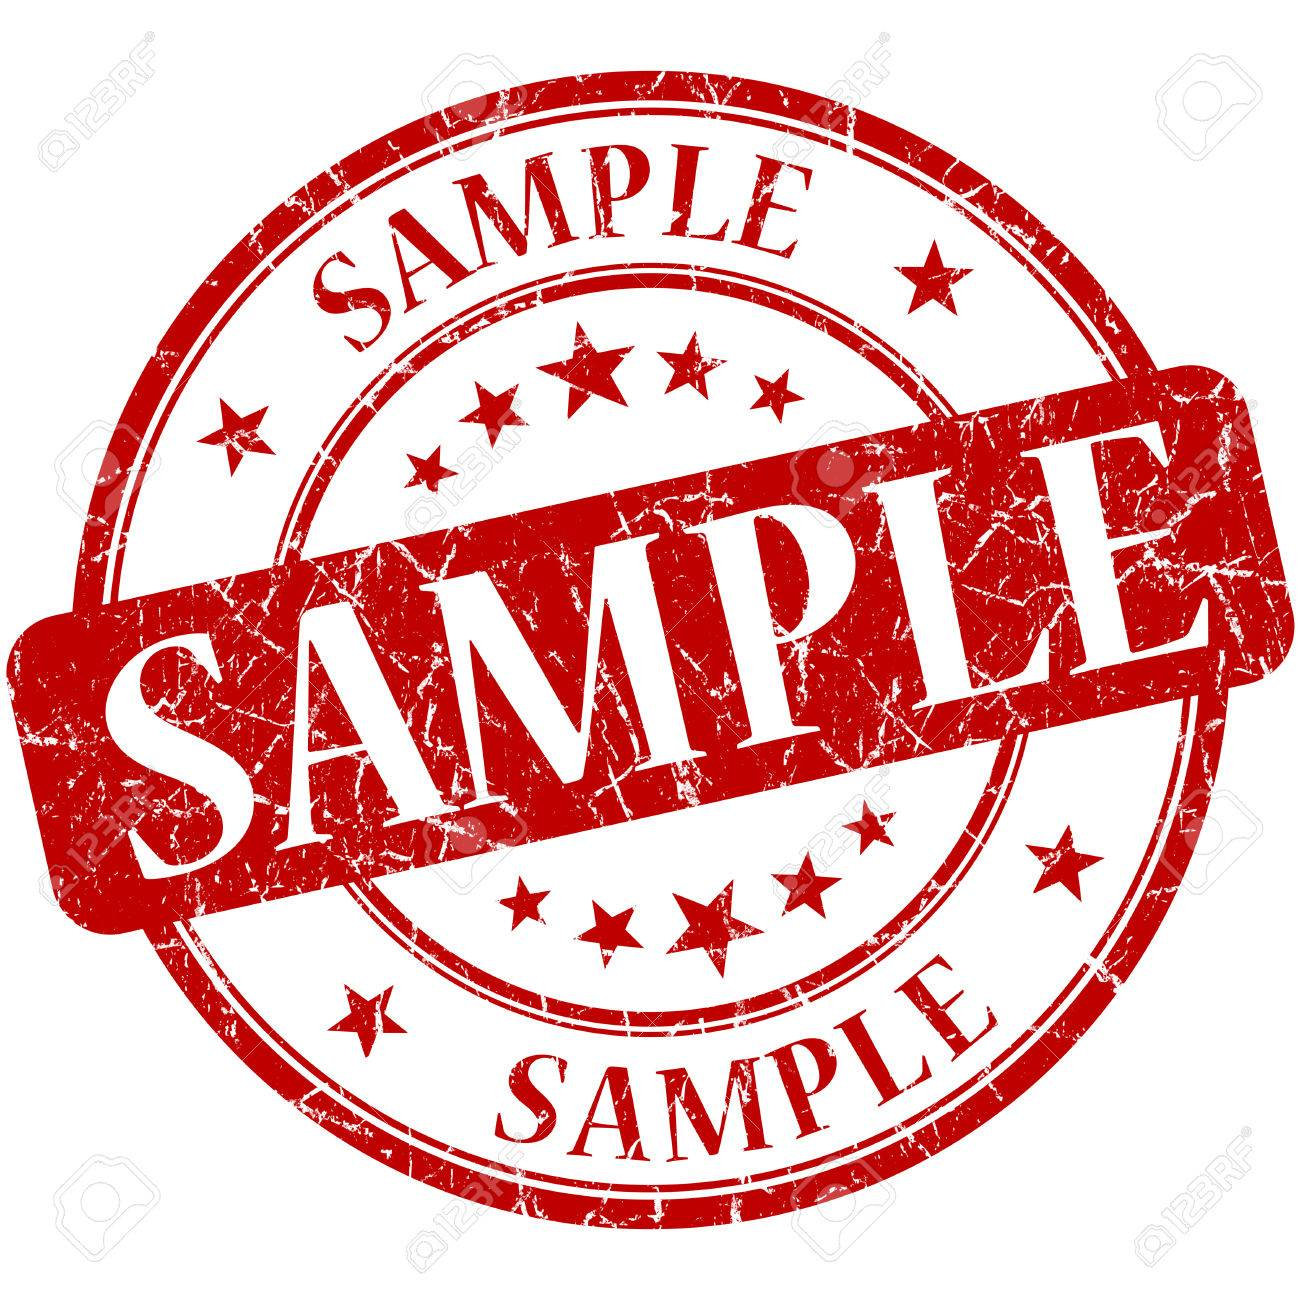 sample grunge red round stamp stock photo picture and royalty free